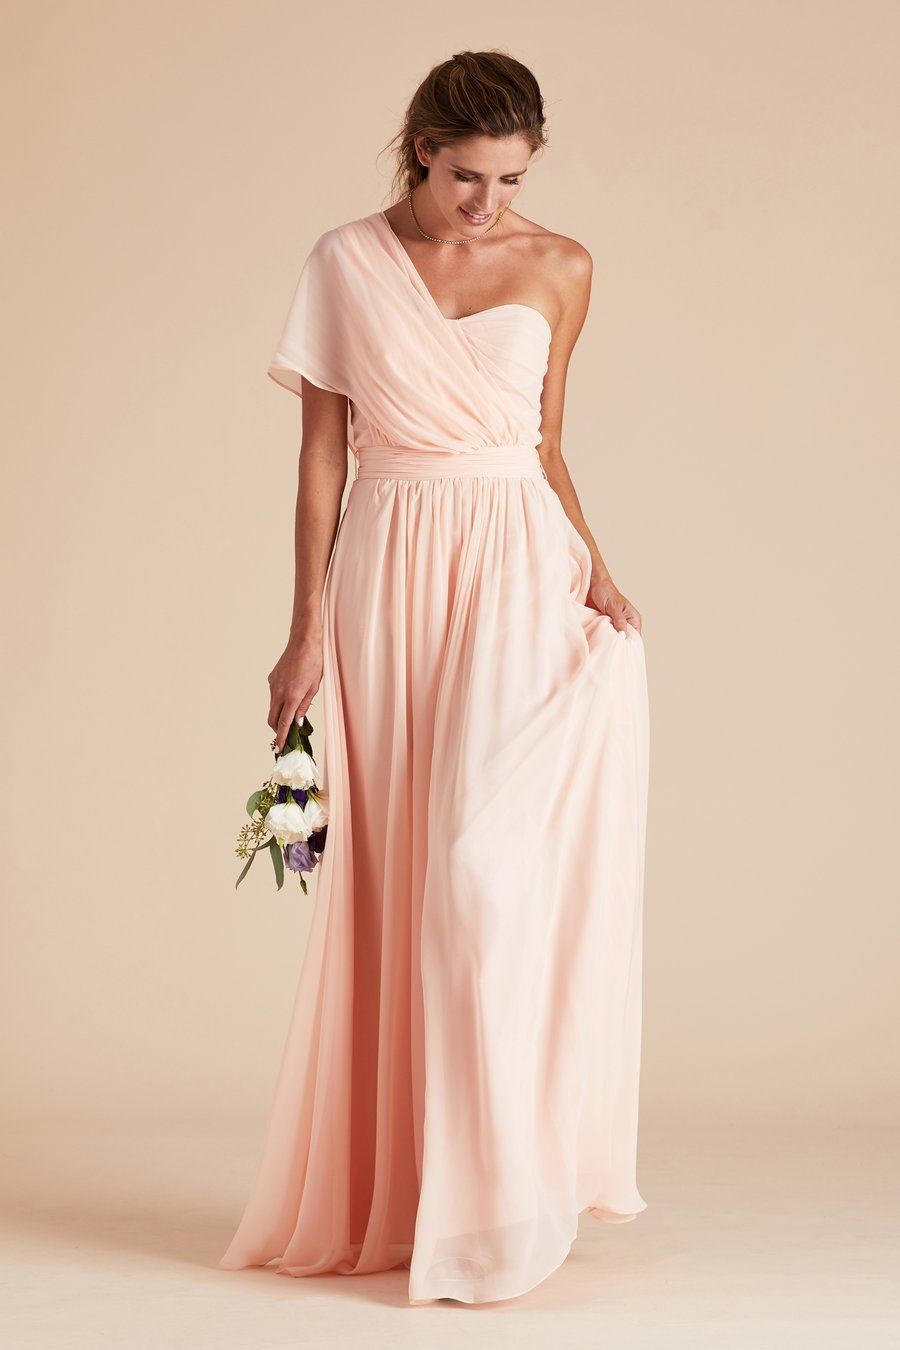 Birdy Grey Gracie Chiffon Convertible Bridesmaid Dress In Blush Pink How To Tie With One Shoulder Sleeve Under 100